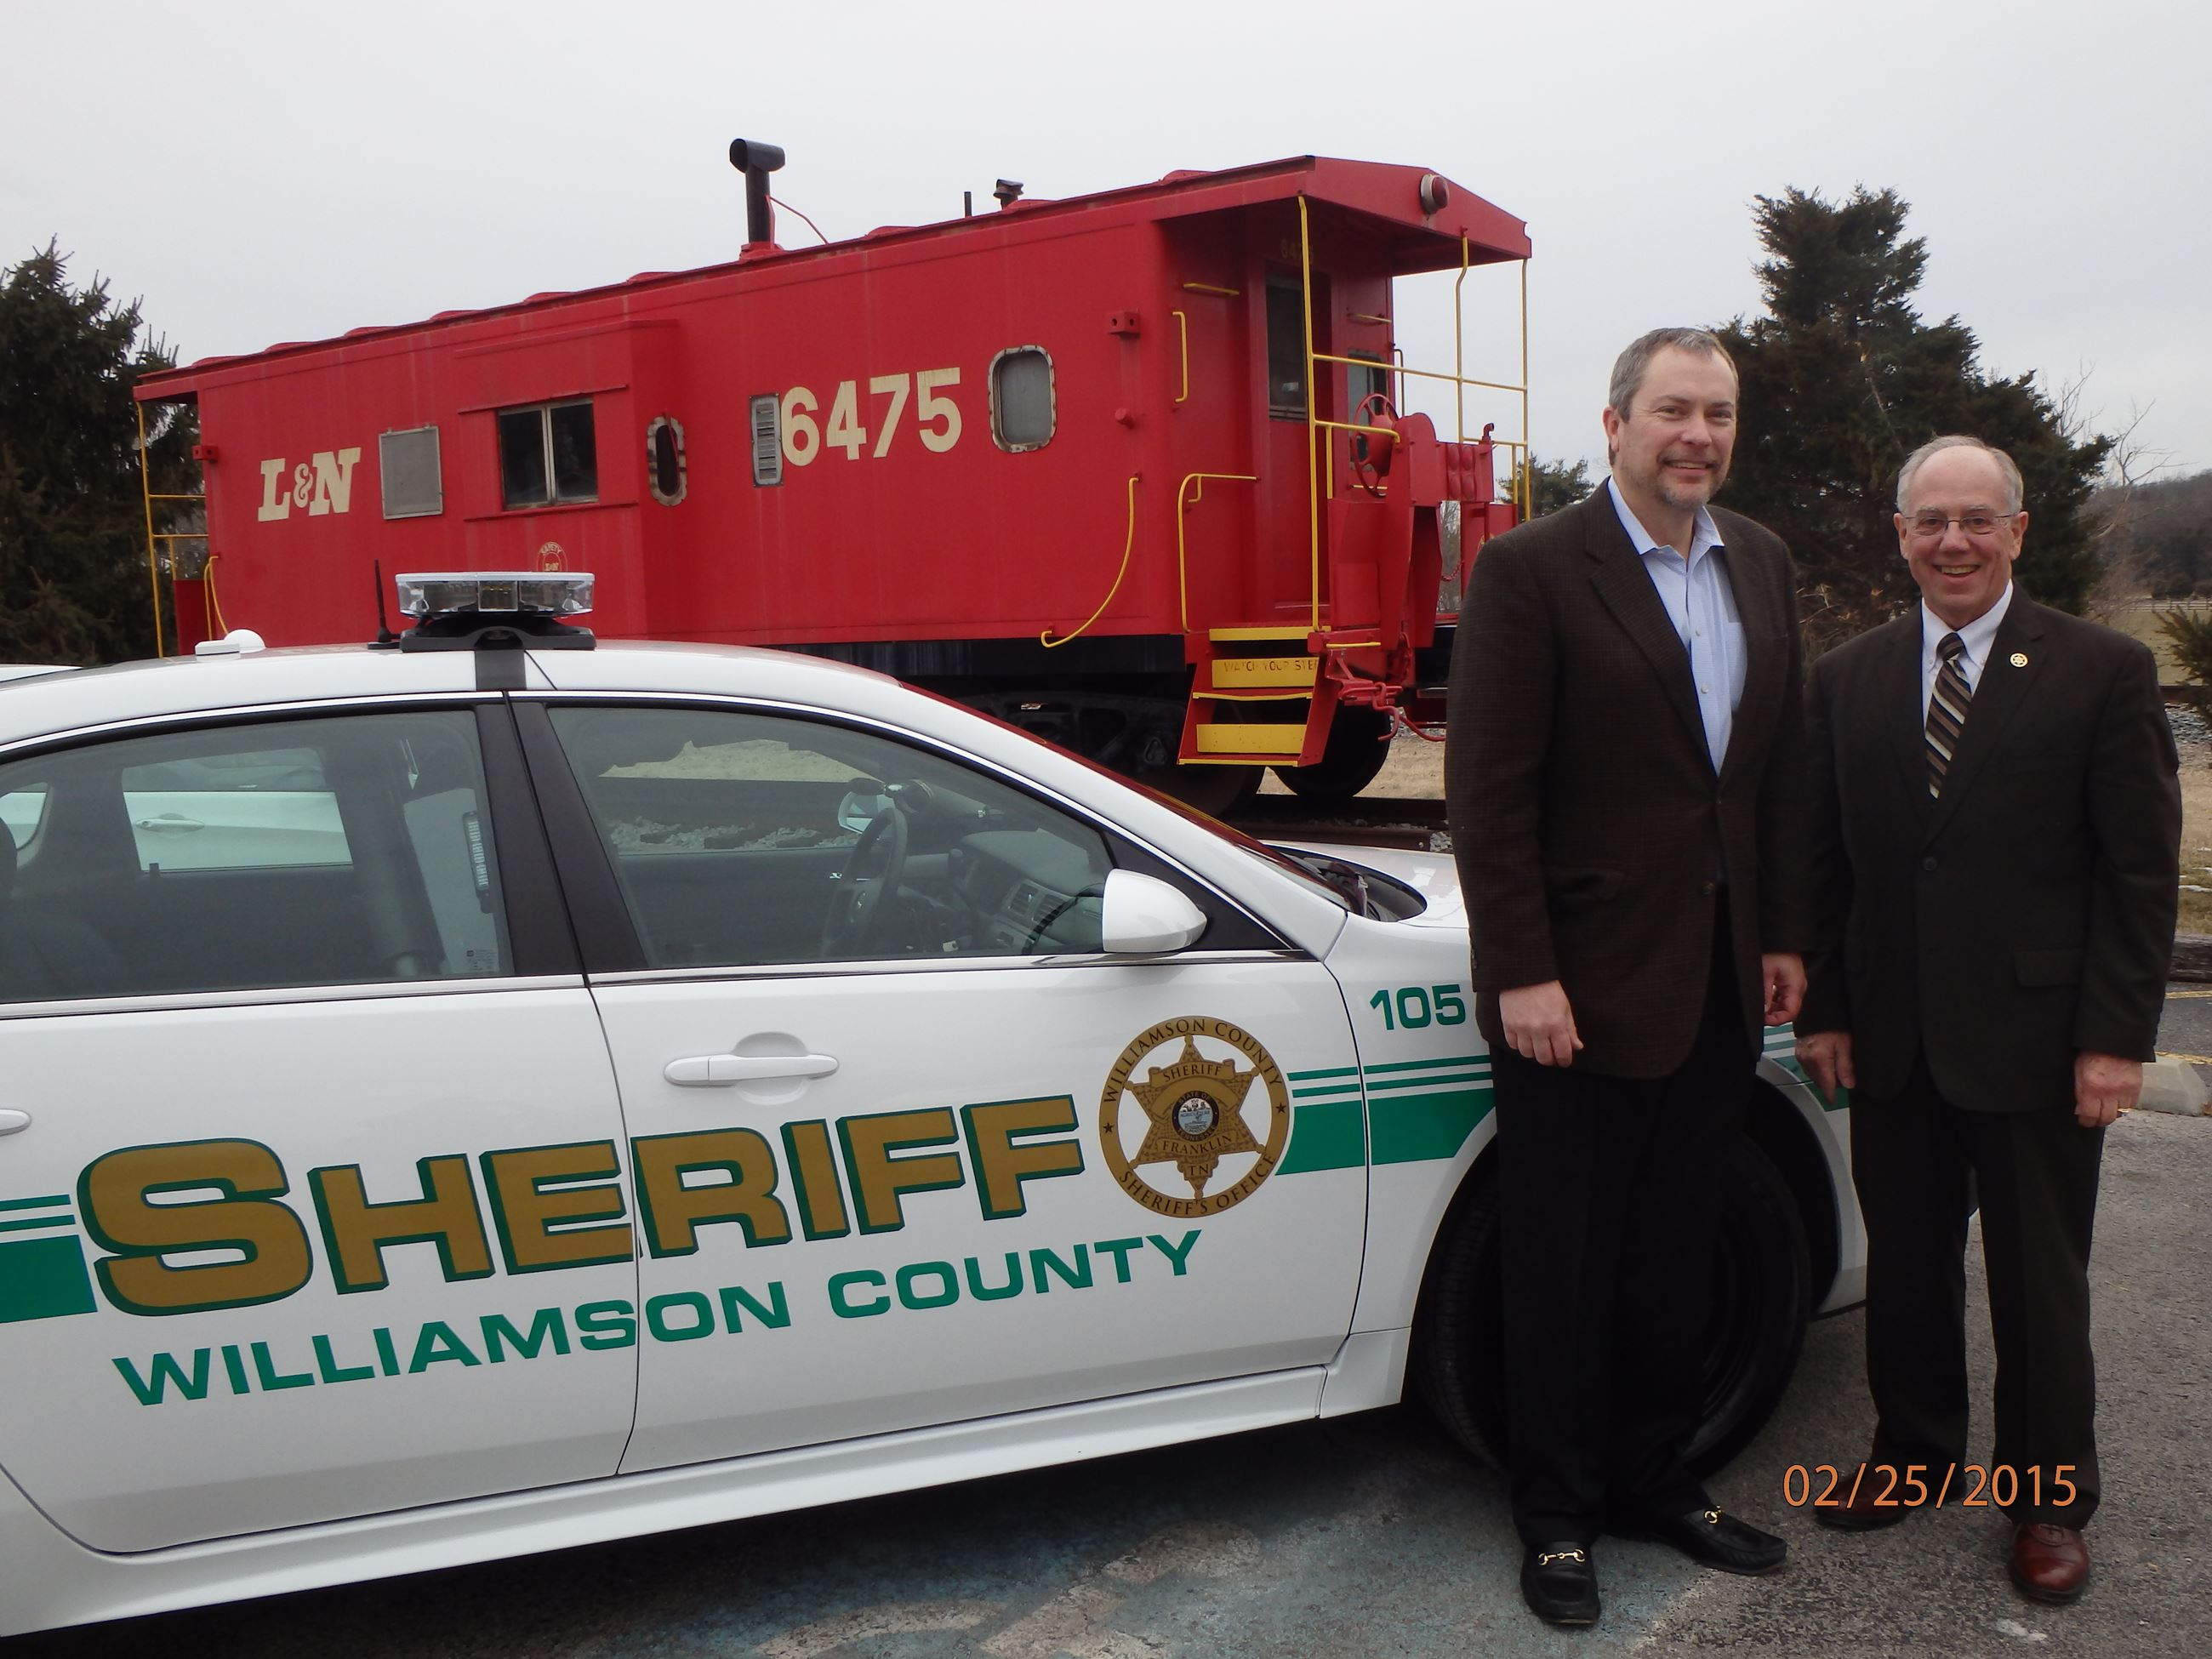 Williamson County Sheriff at Thompson's Station - Car Donation